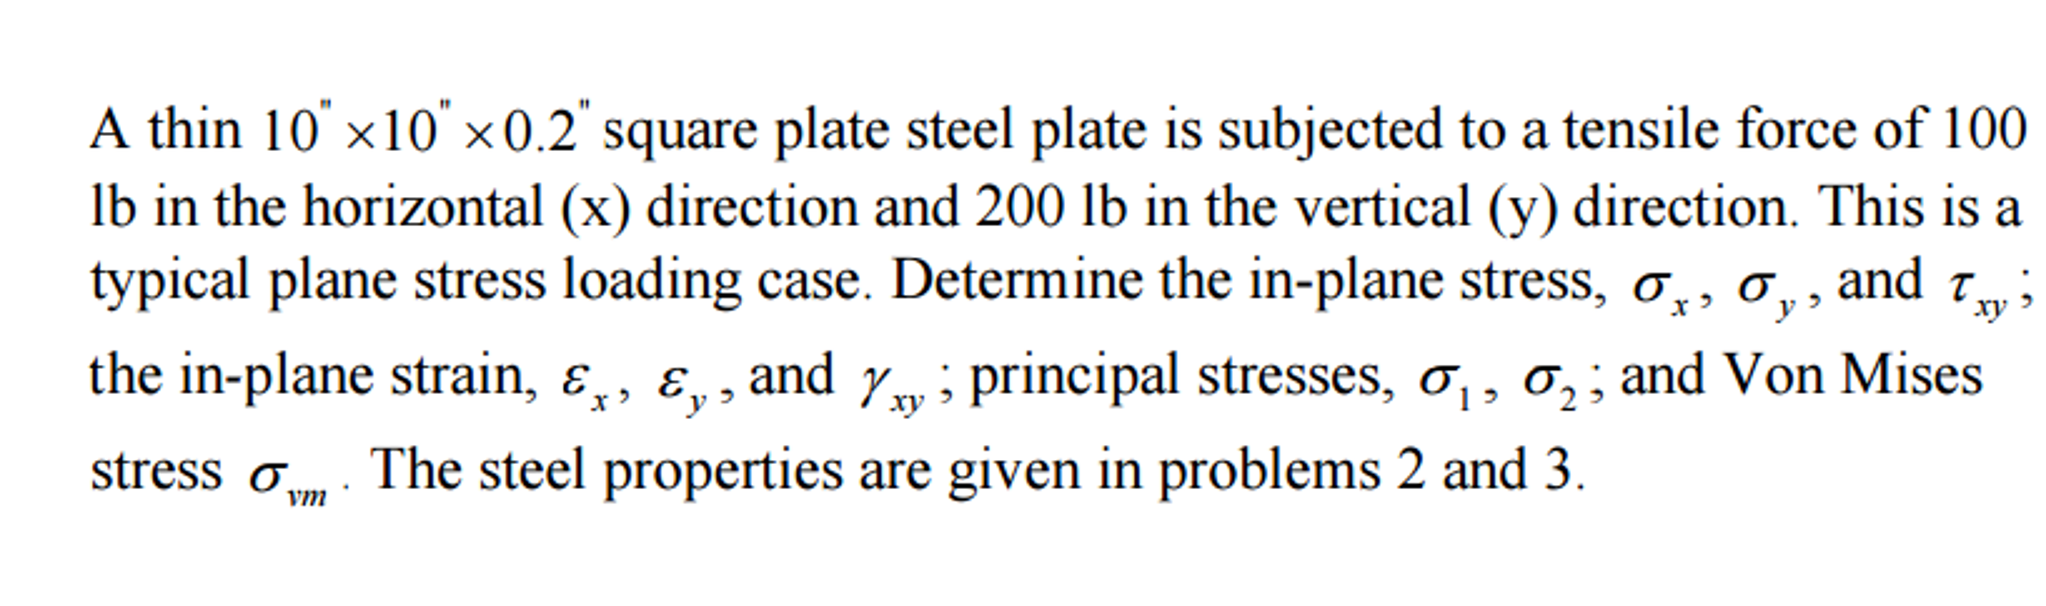 "Question: A thin 10"" times 10"" times 0.2"" square plate steel plate is  subjected to a tensile force of 100 l."